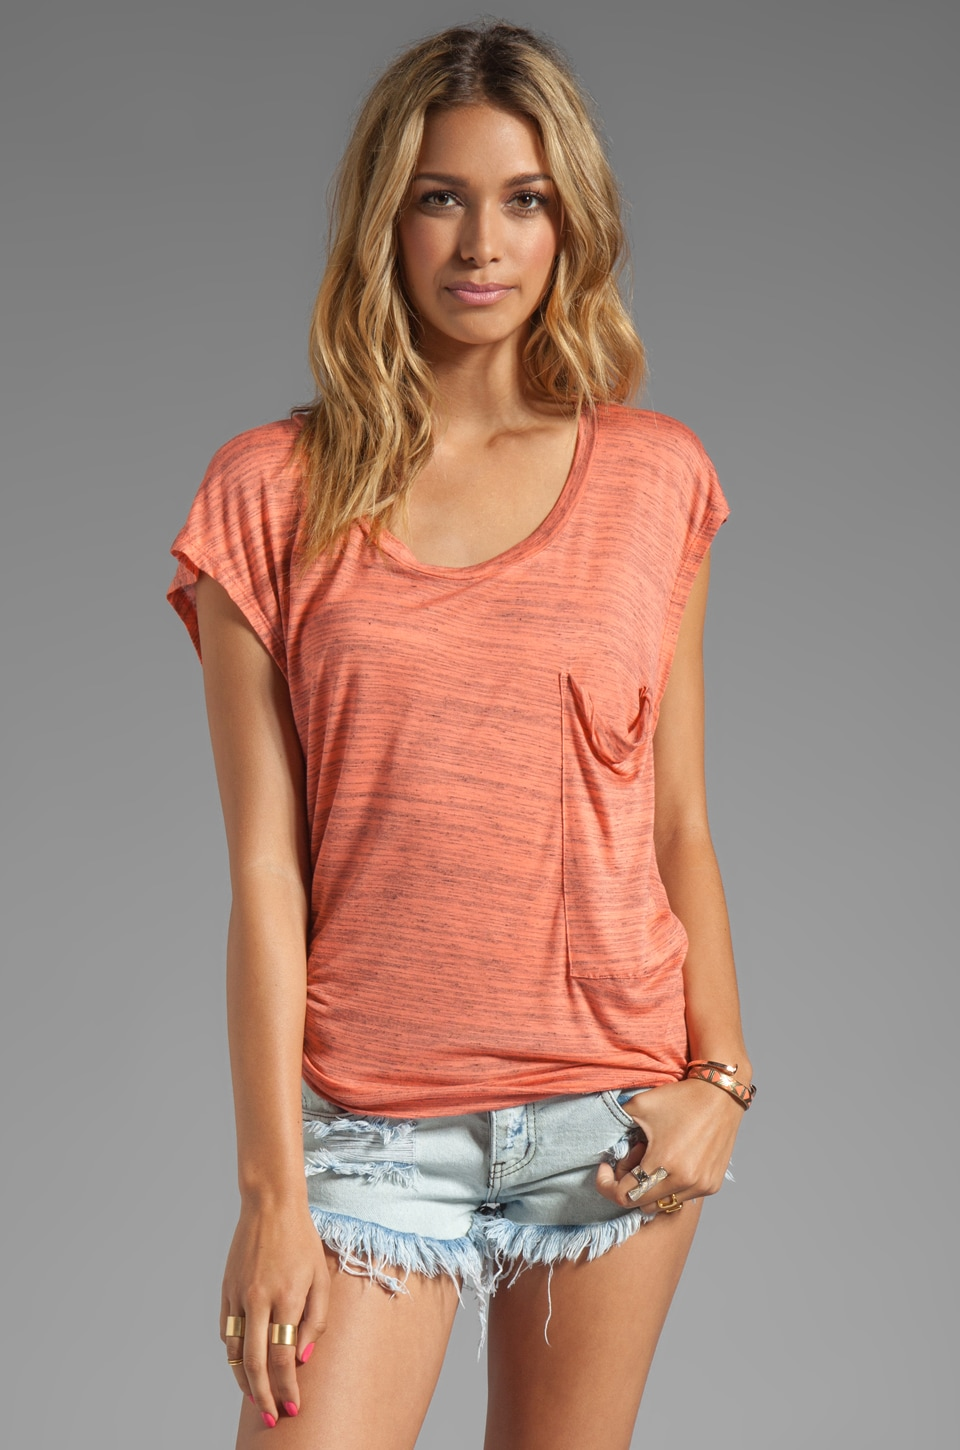 Blue Life Boardwalk Best Bum Tee in Sunset